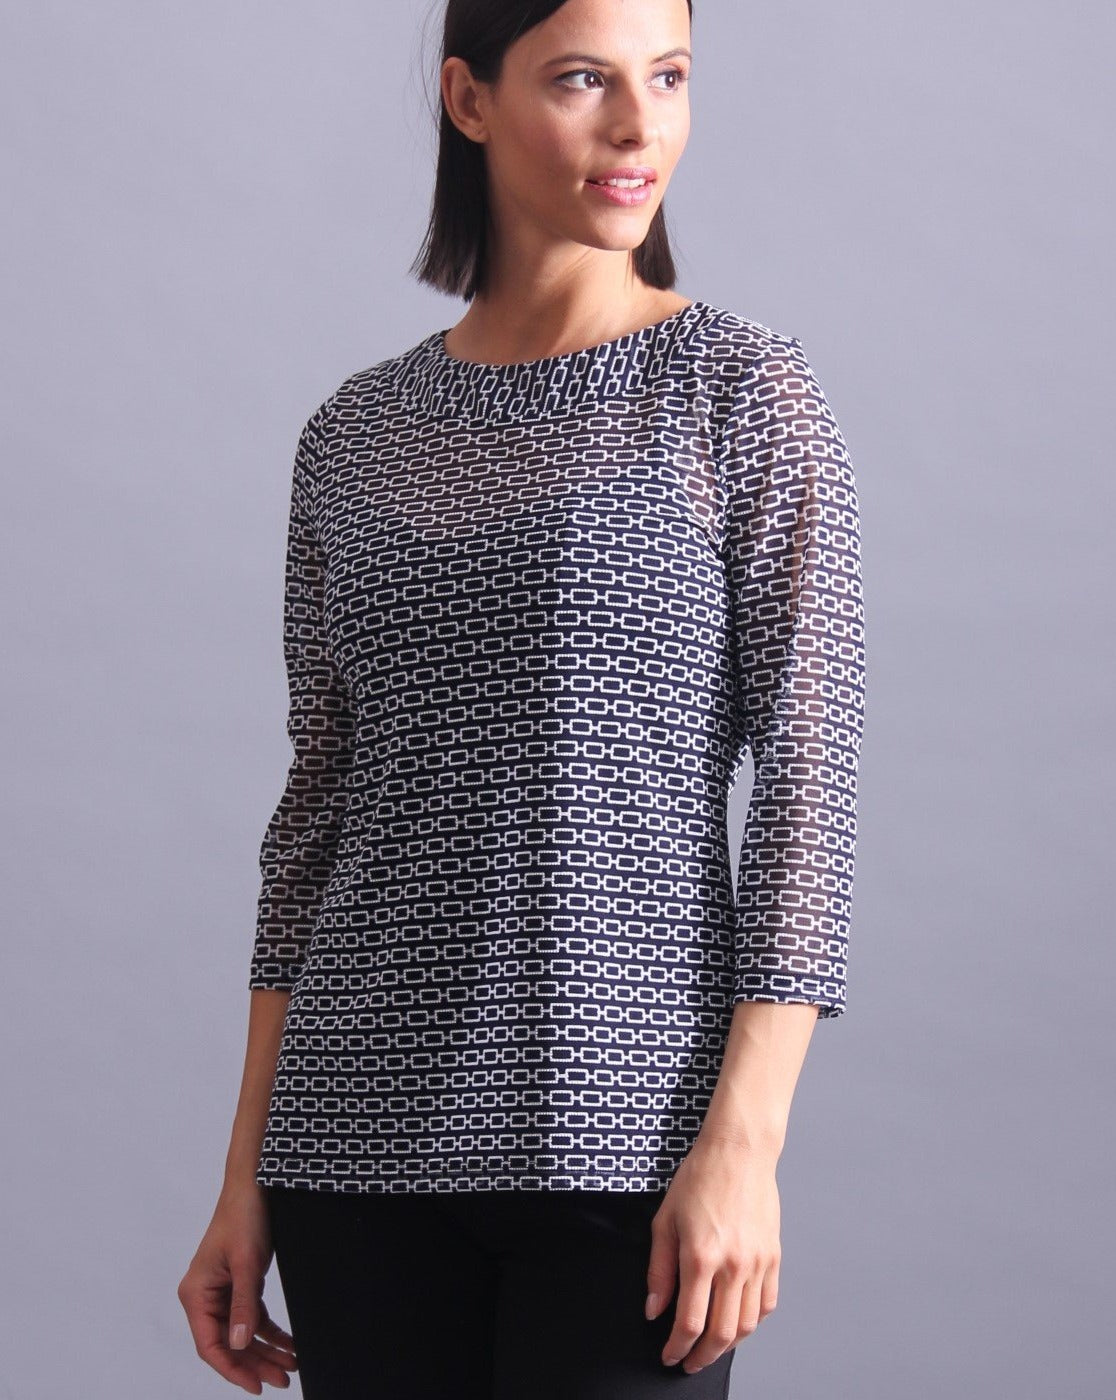 Hermes Top 3/4 sleeve - Second Skin